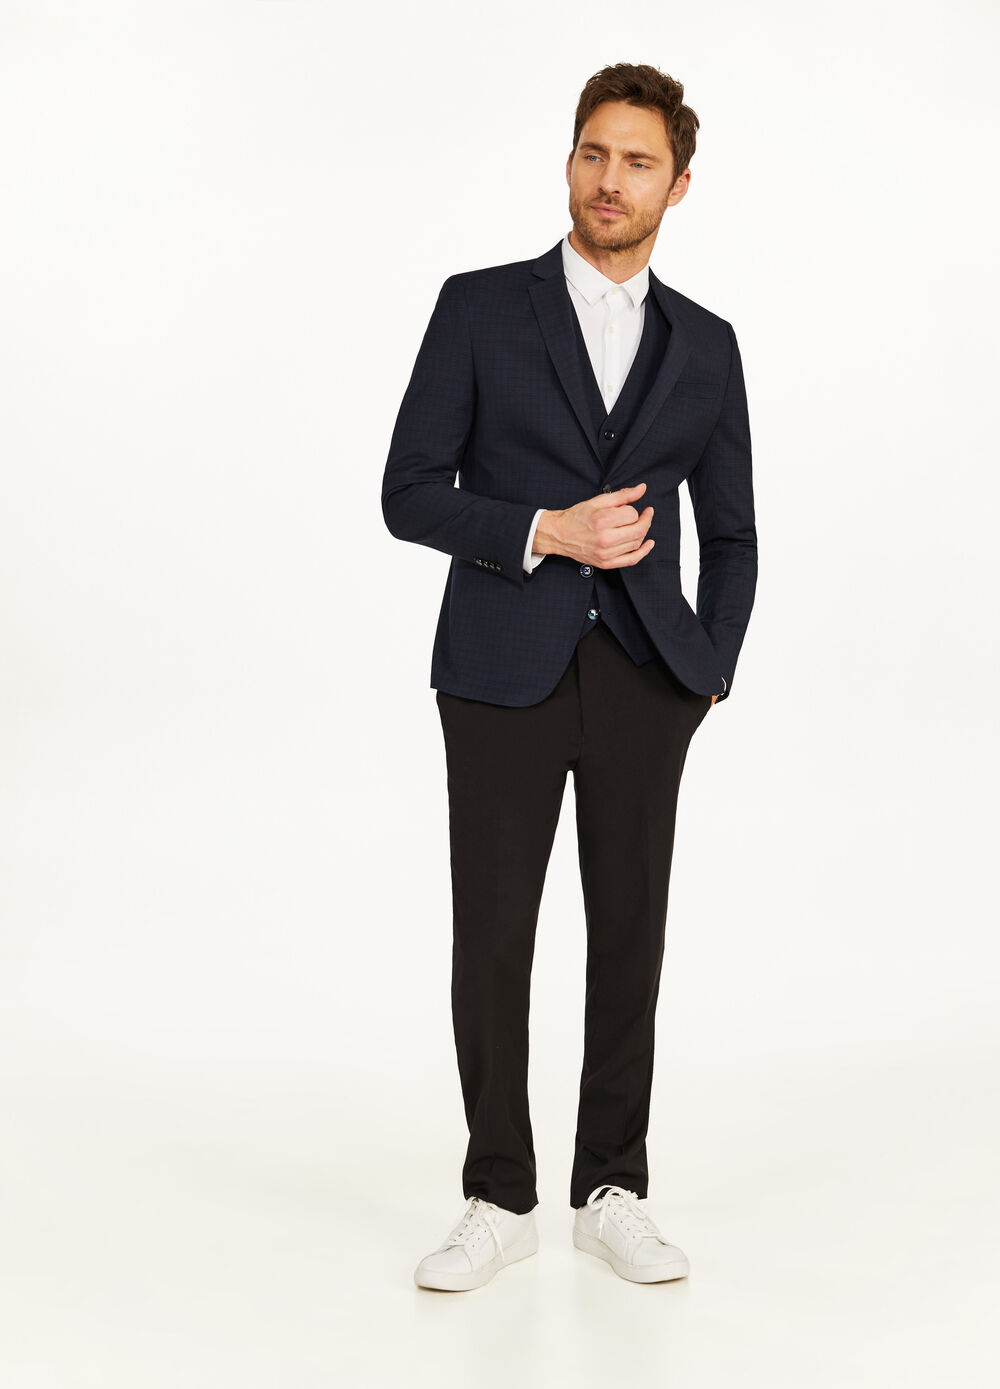 Elegant, slim-fit jacket with micro check pattern